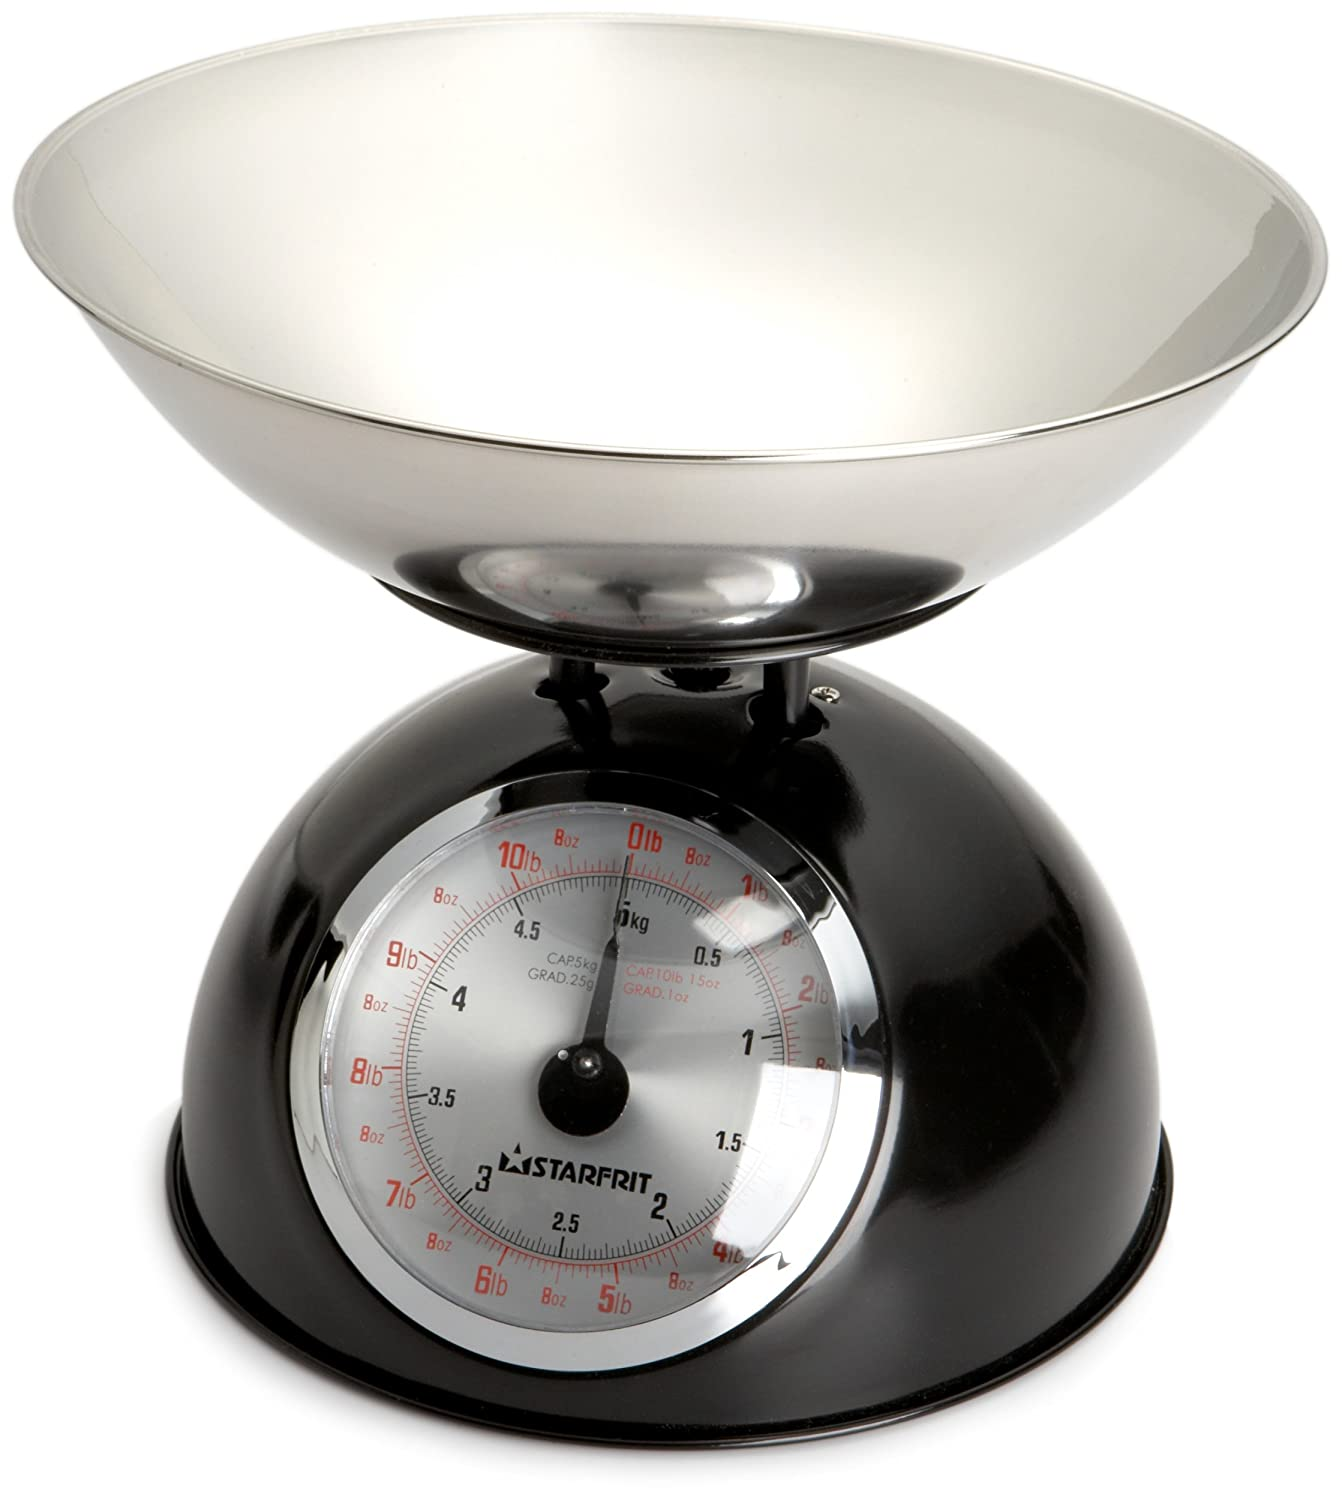 Starfrit Retro Kitchen Scale Best Digital Scales